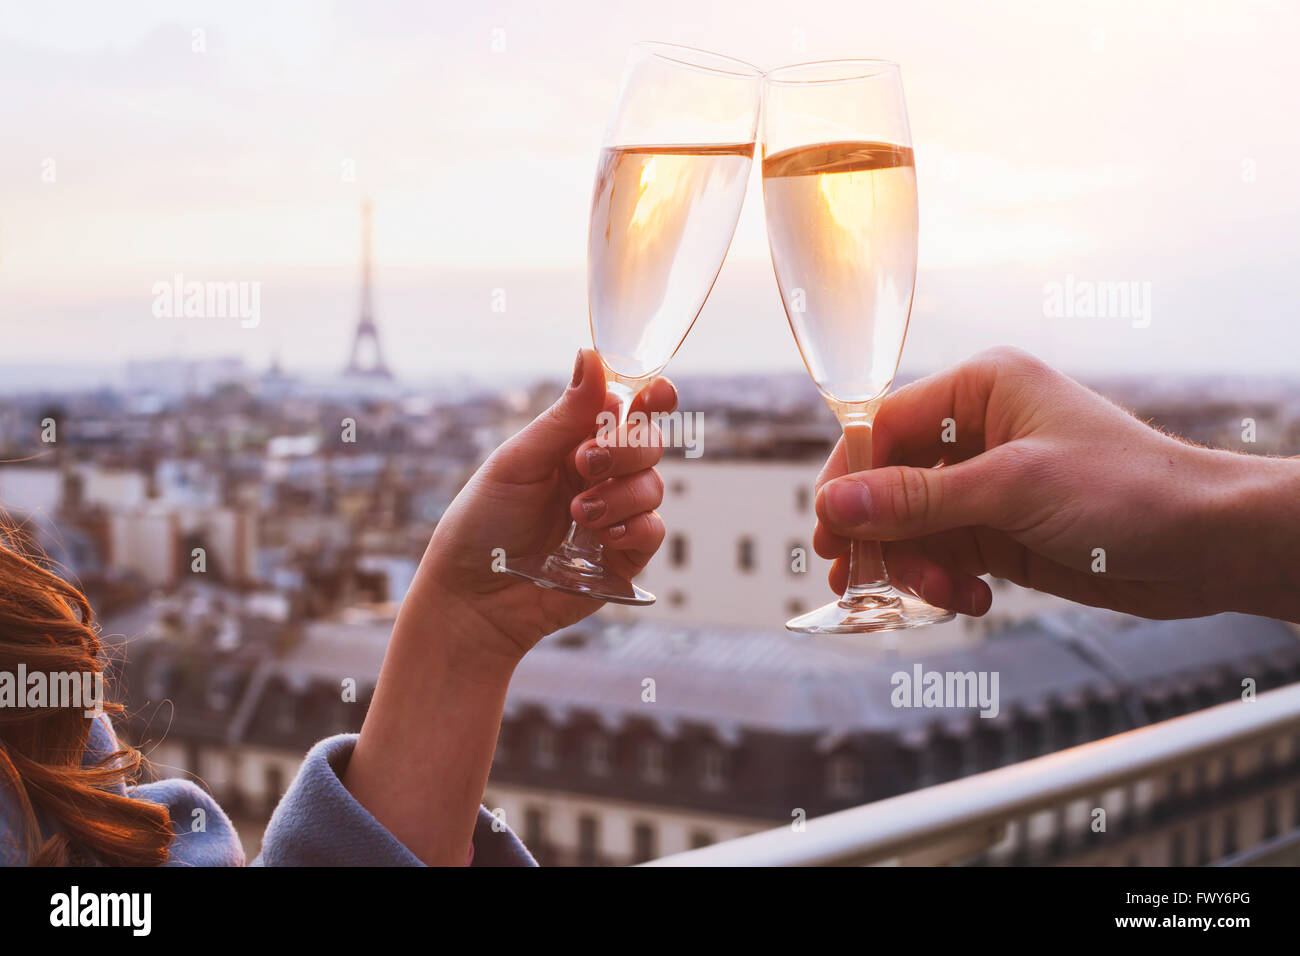 two glasses of champagne or wine, couple in Paris, romantic celebration of engagement or anniversary - Stock Image